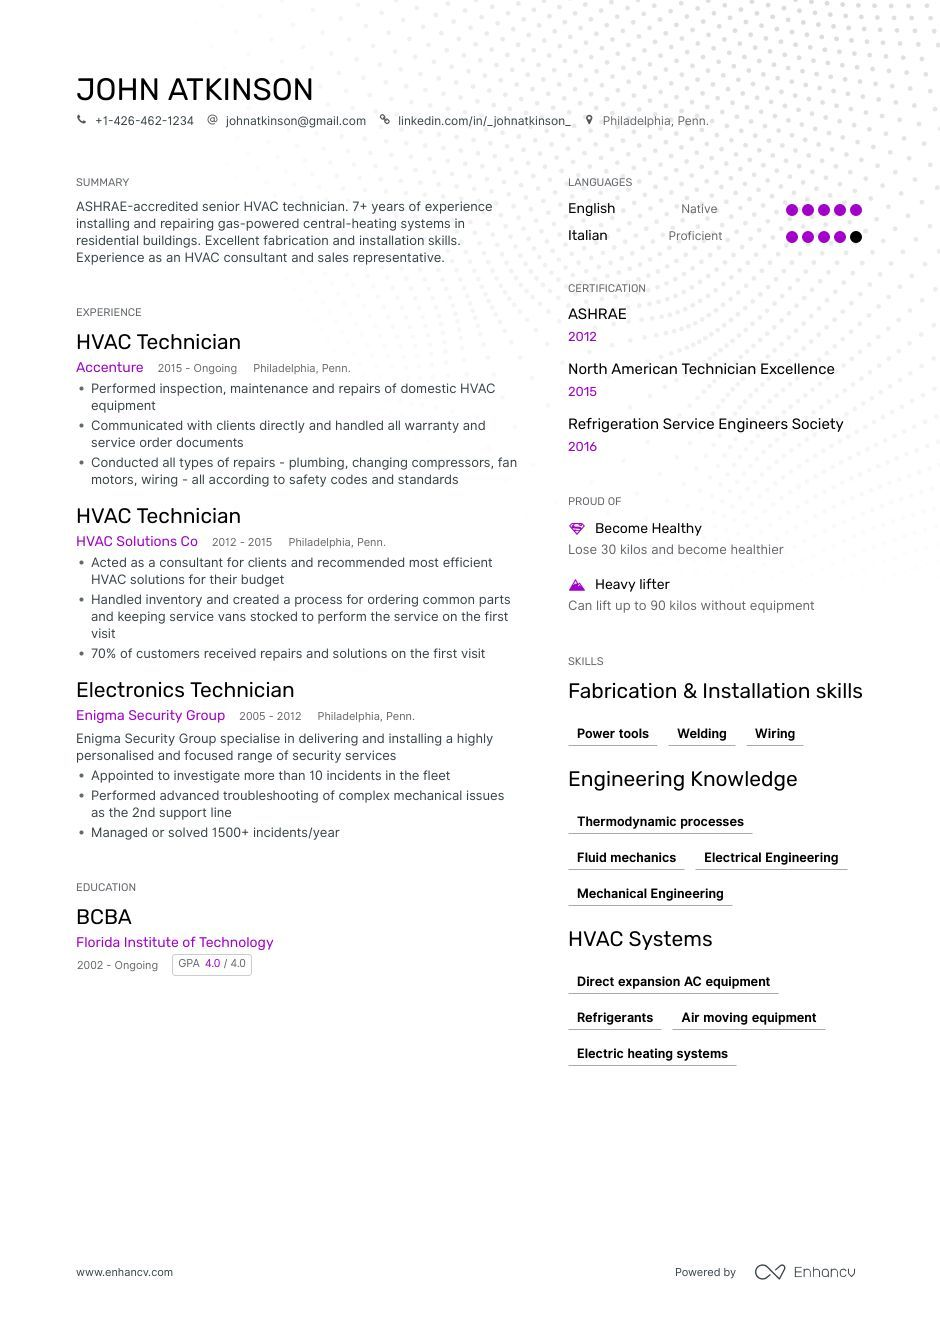 HVAC Resume Samples and Writing Guide for 2020 Resume